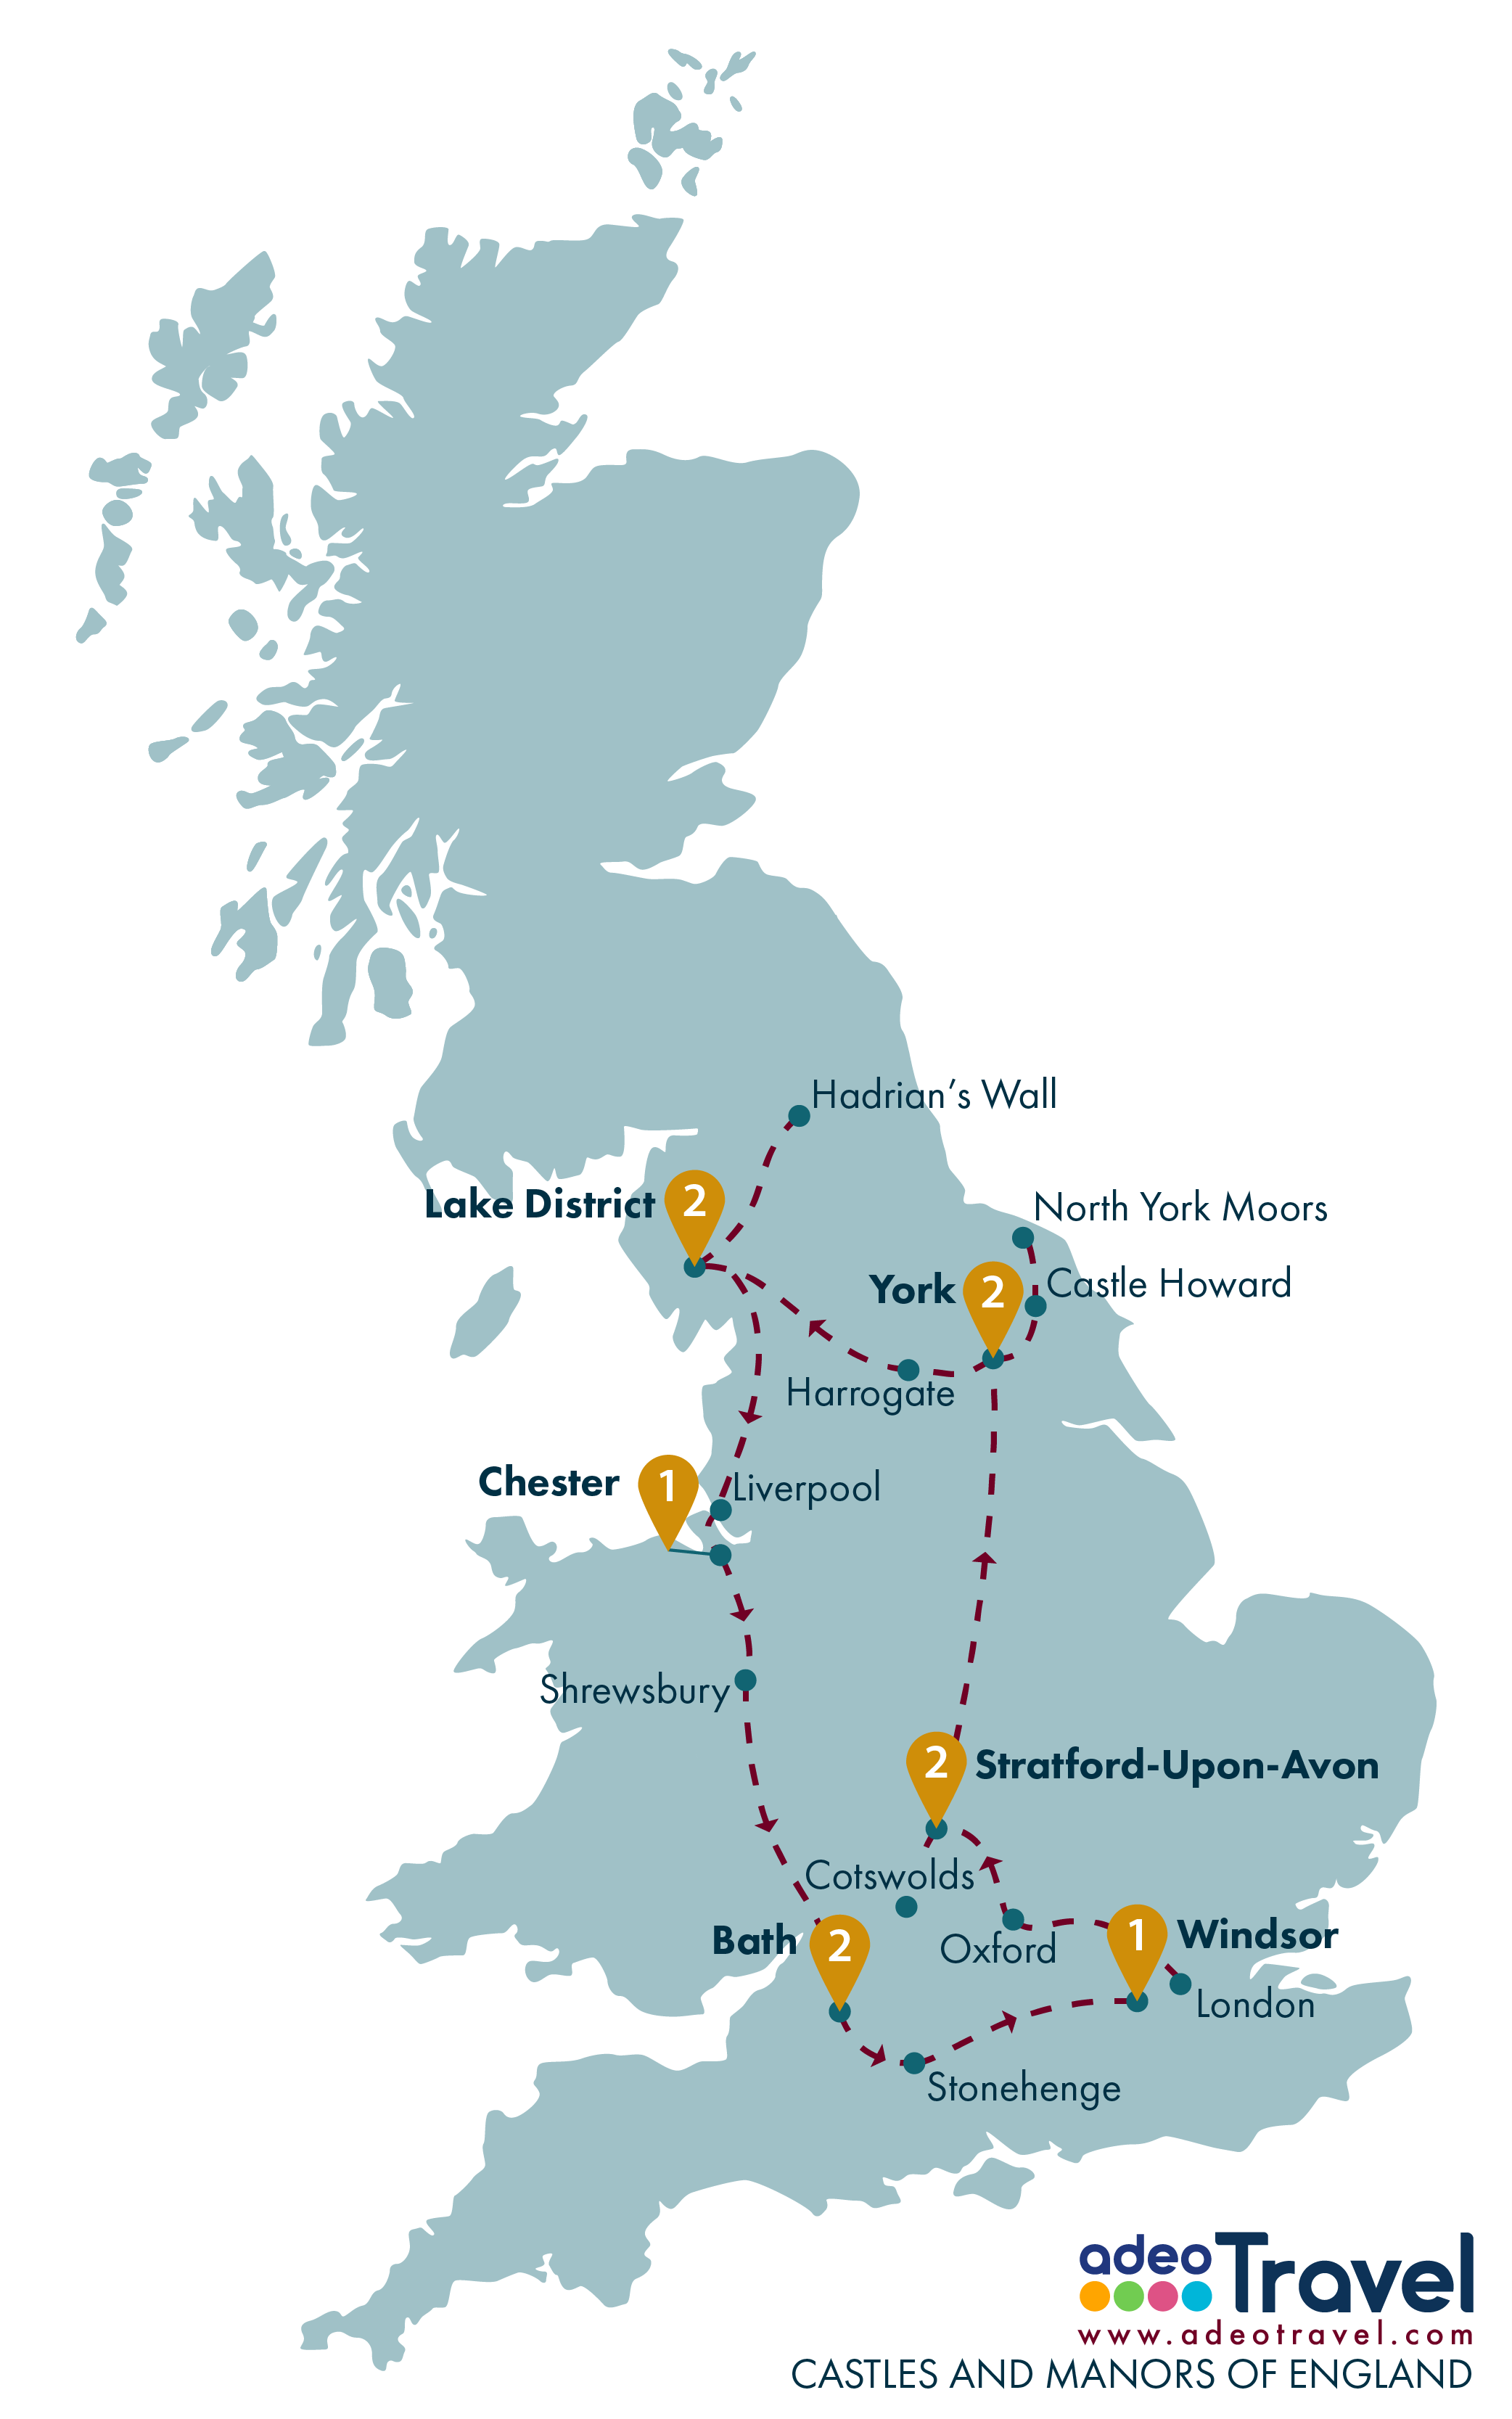 Tour Map - Castles and Manors of England